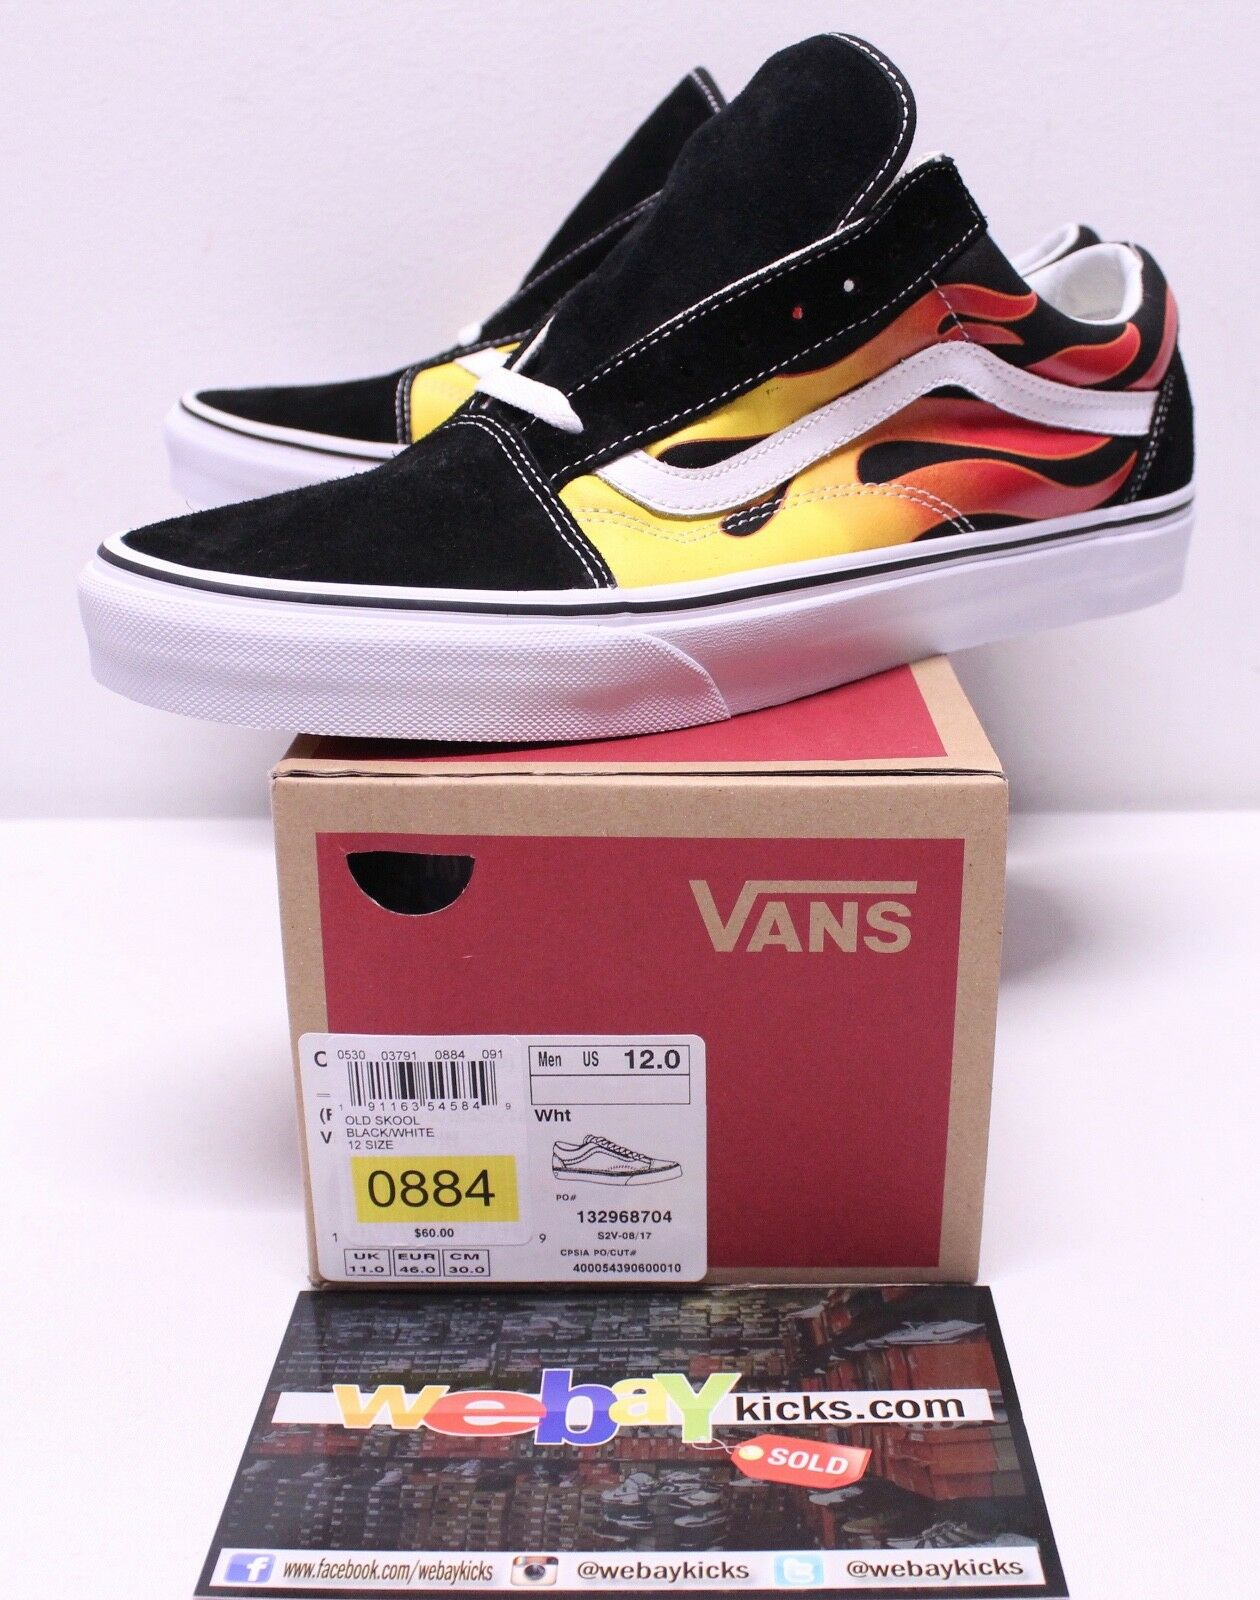 Vans Old Skool Flames Black Red White Sneakers Men's Size 12 Brand New